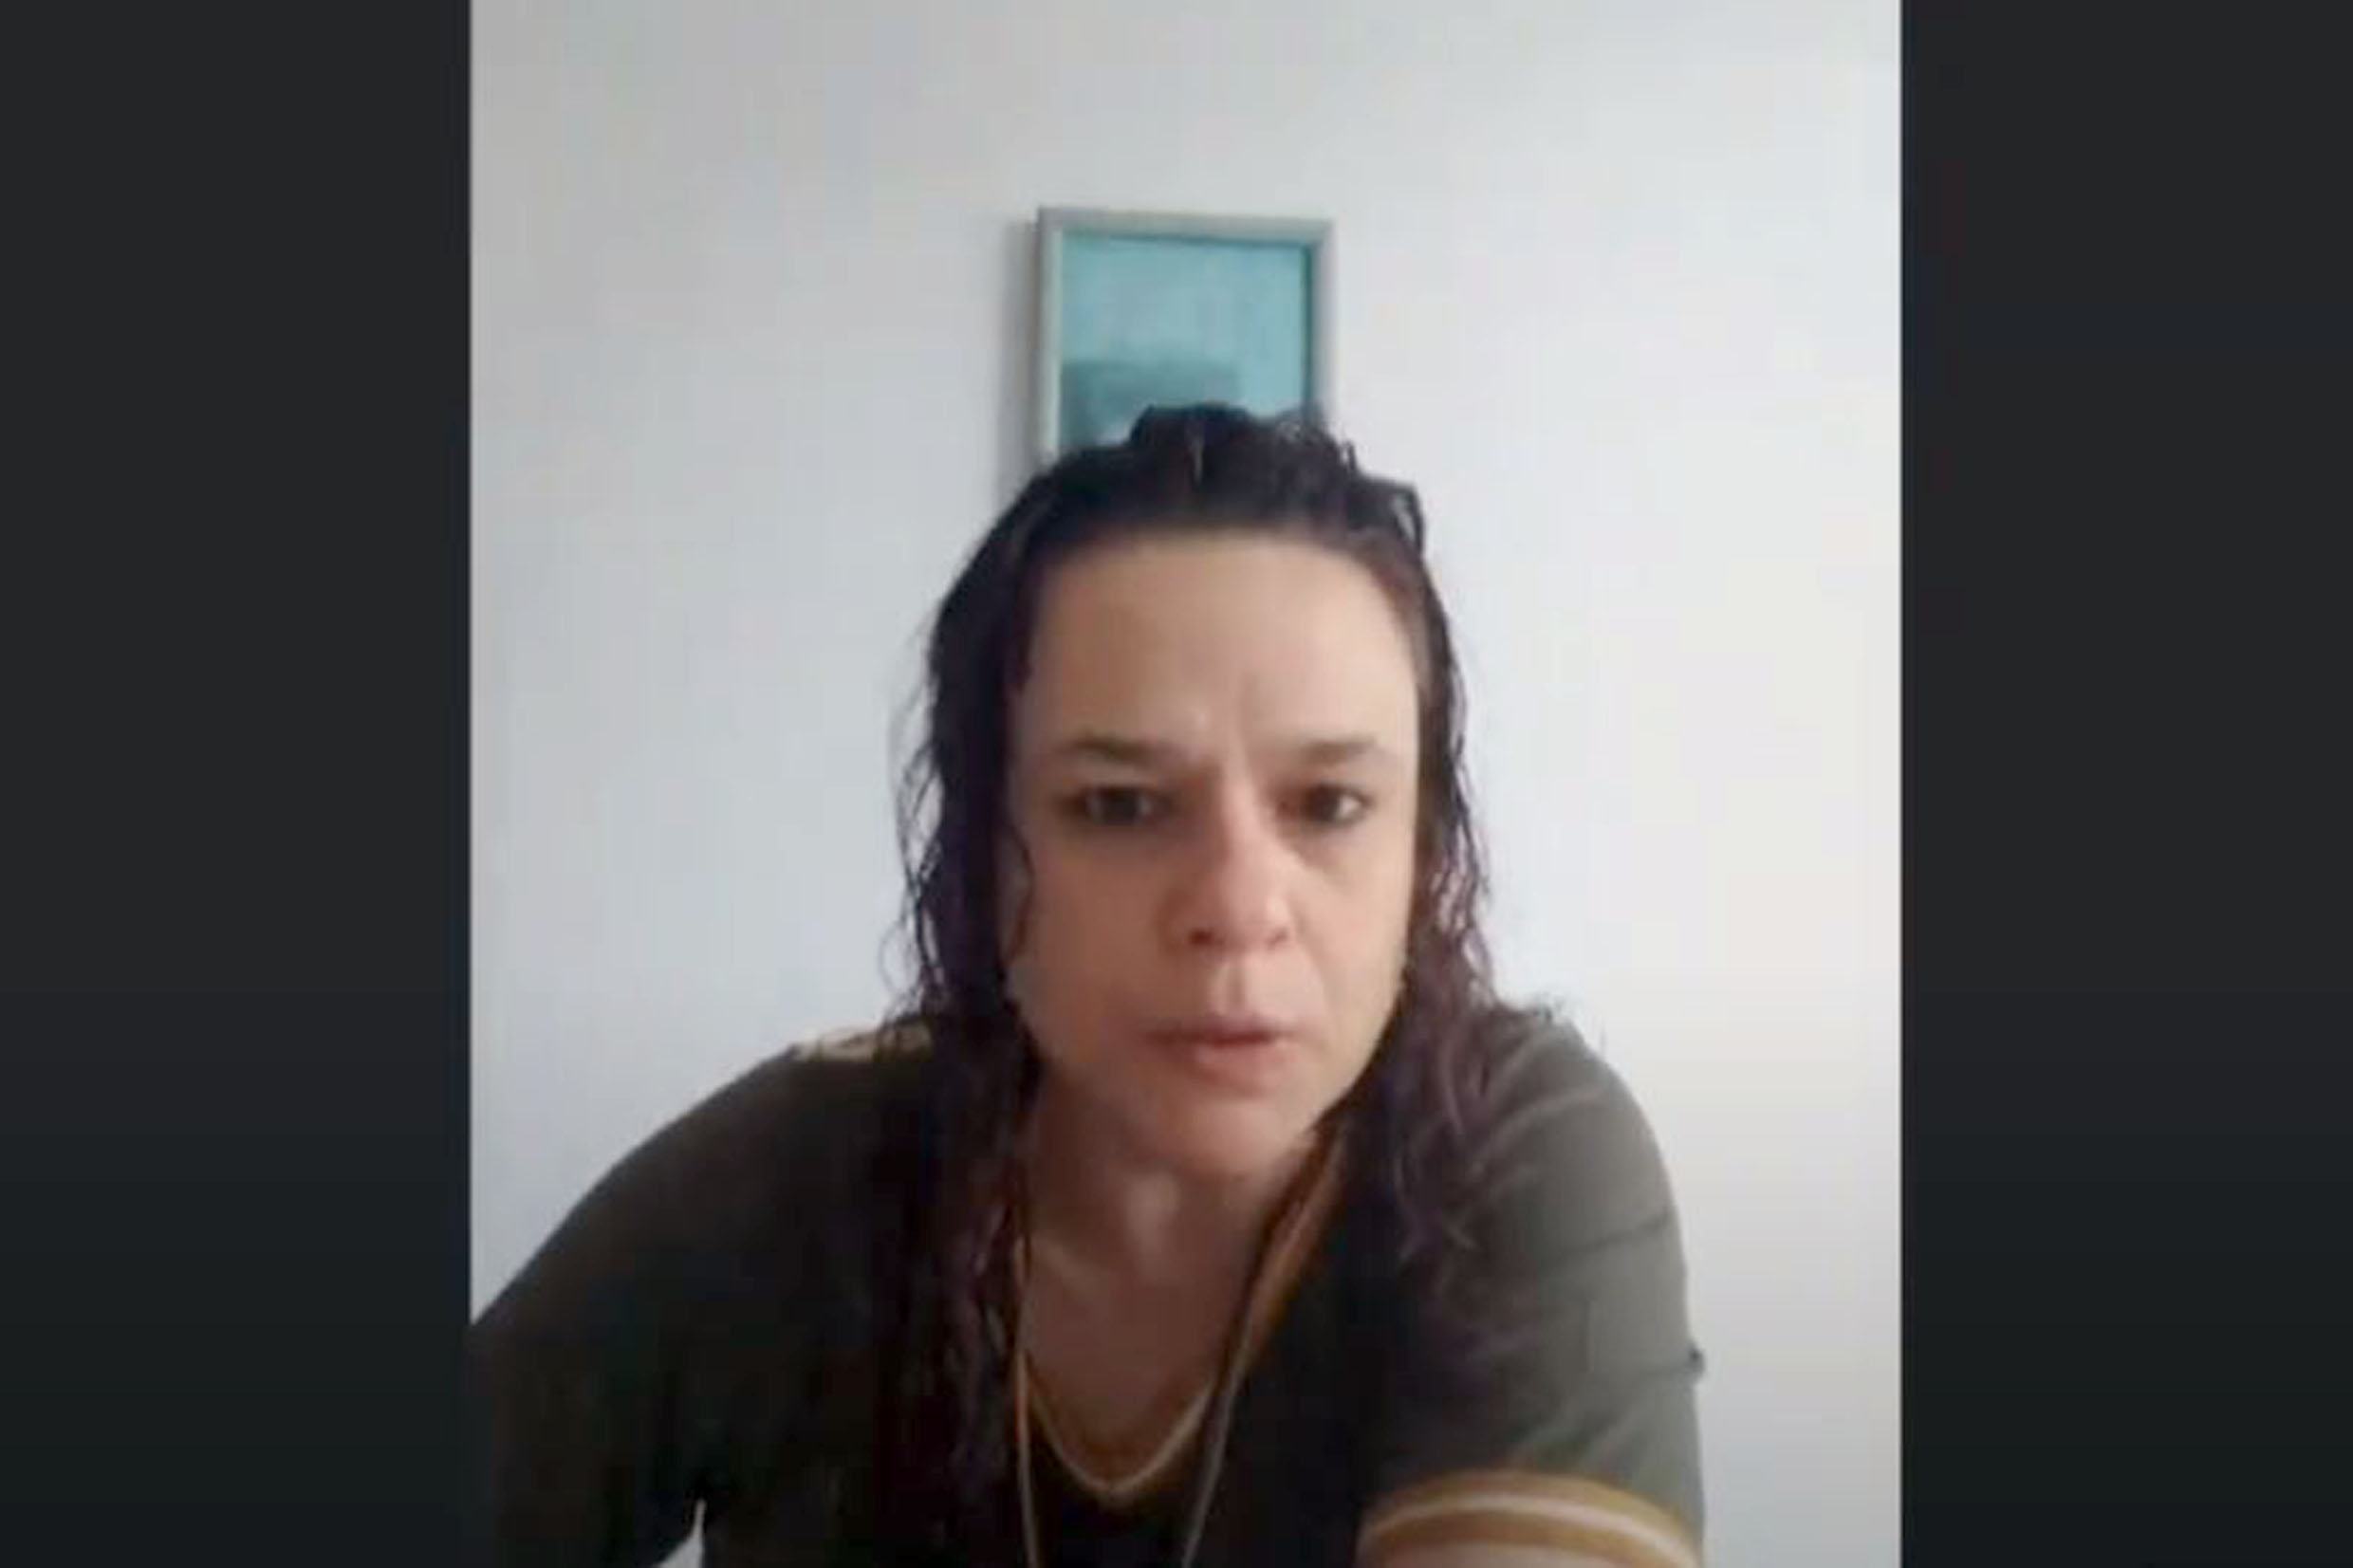 Janaina Paschoal<a style='float:right' href='https://www3.al.sp.gov.br/repositorio/noticia/N-09-2020/fg254645.jpg' target=_blank><img src='/_img/material-file-download-white.png' width='14px' alt='Clique para baixar a imagem'></a>